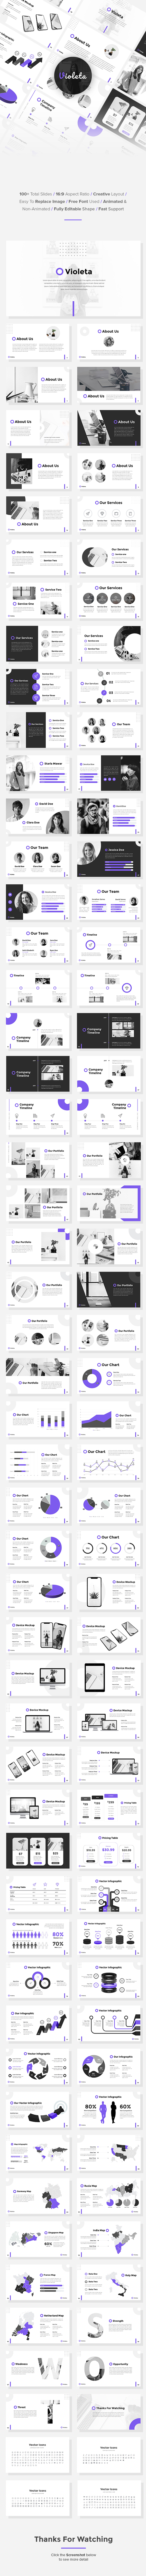 GraphicRiver Violeta StartUp Pitch Deck PowerPoint Template 20960806